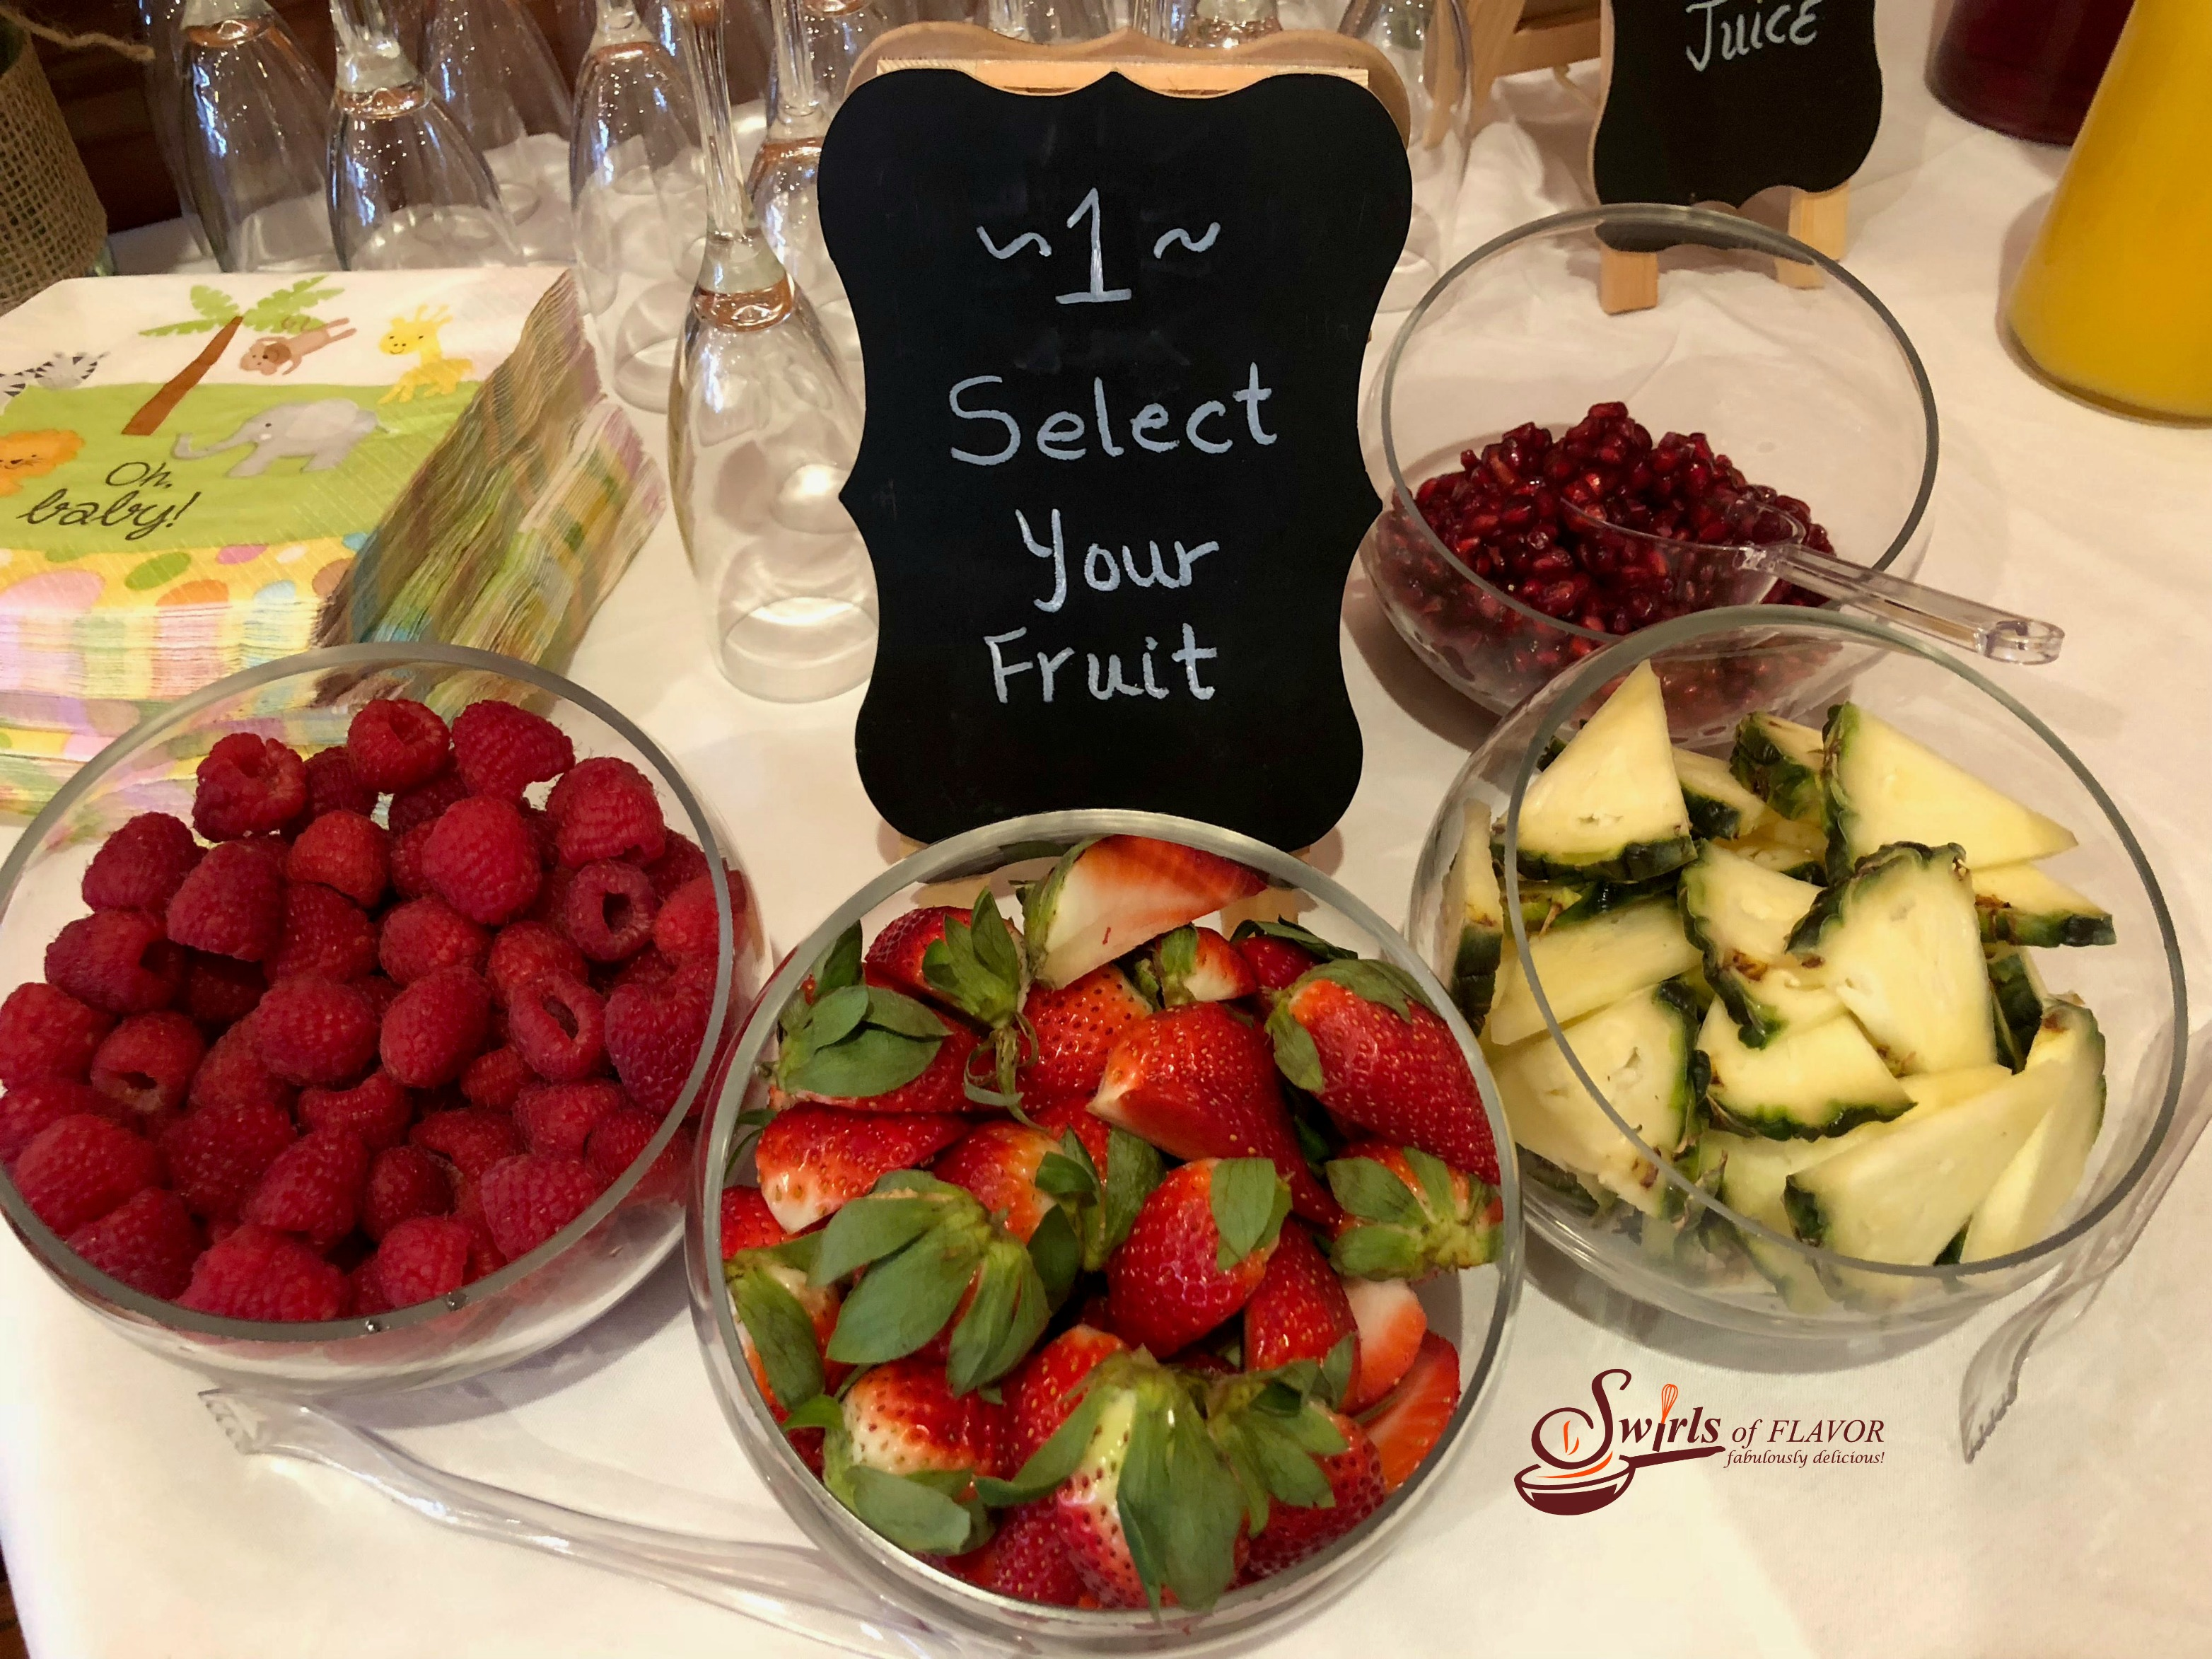 Select your fruit sign with bowls of fresh fruits